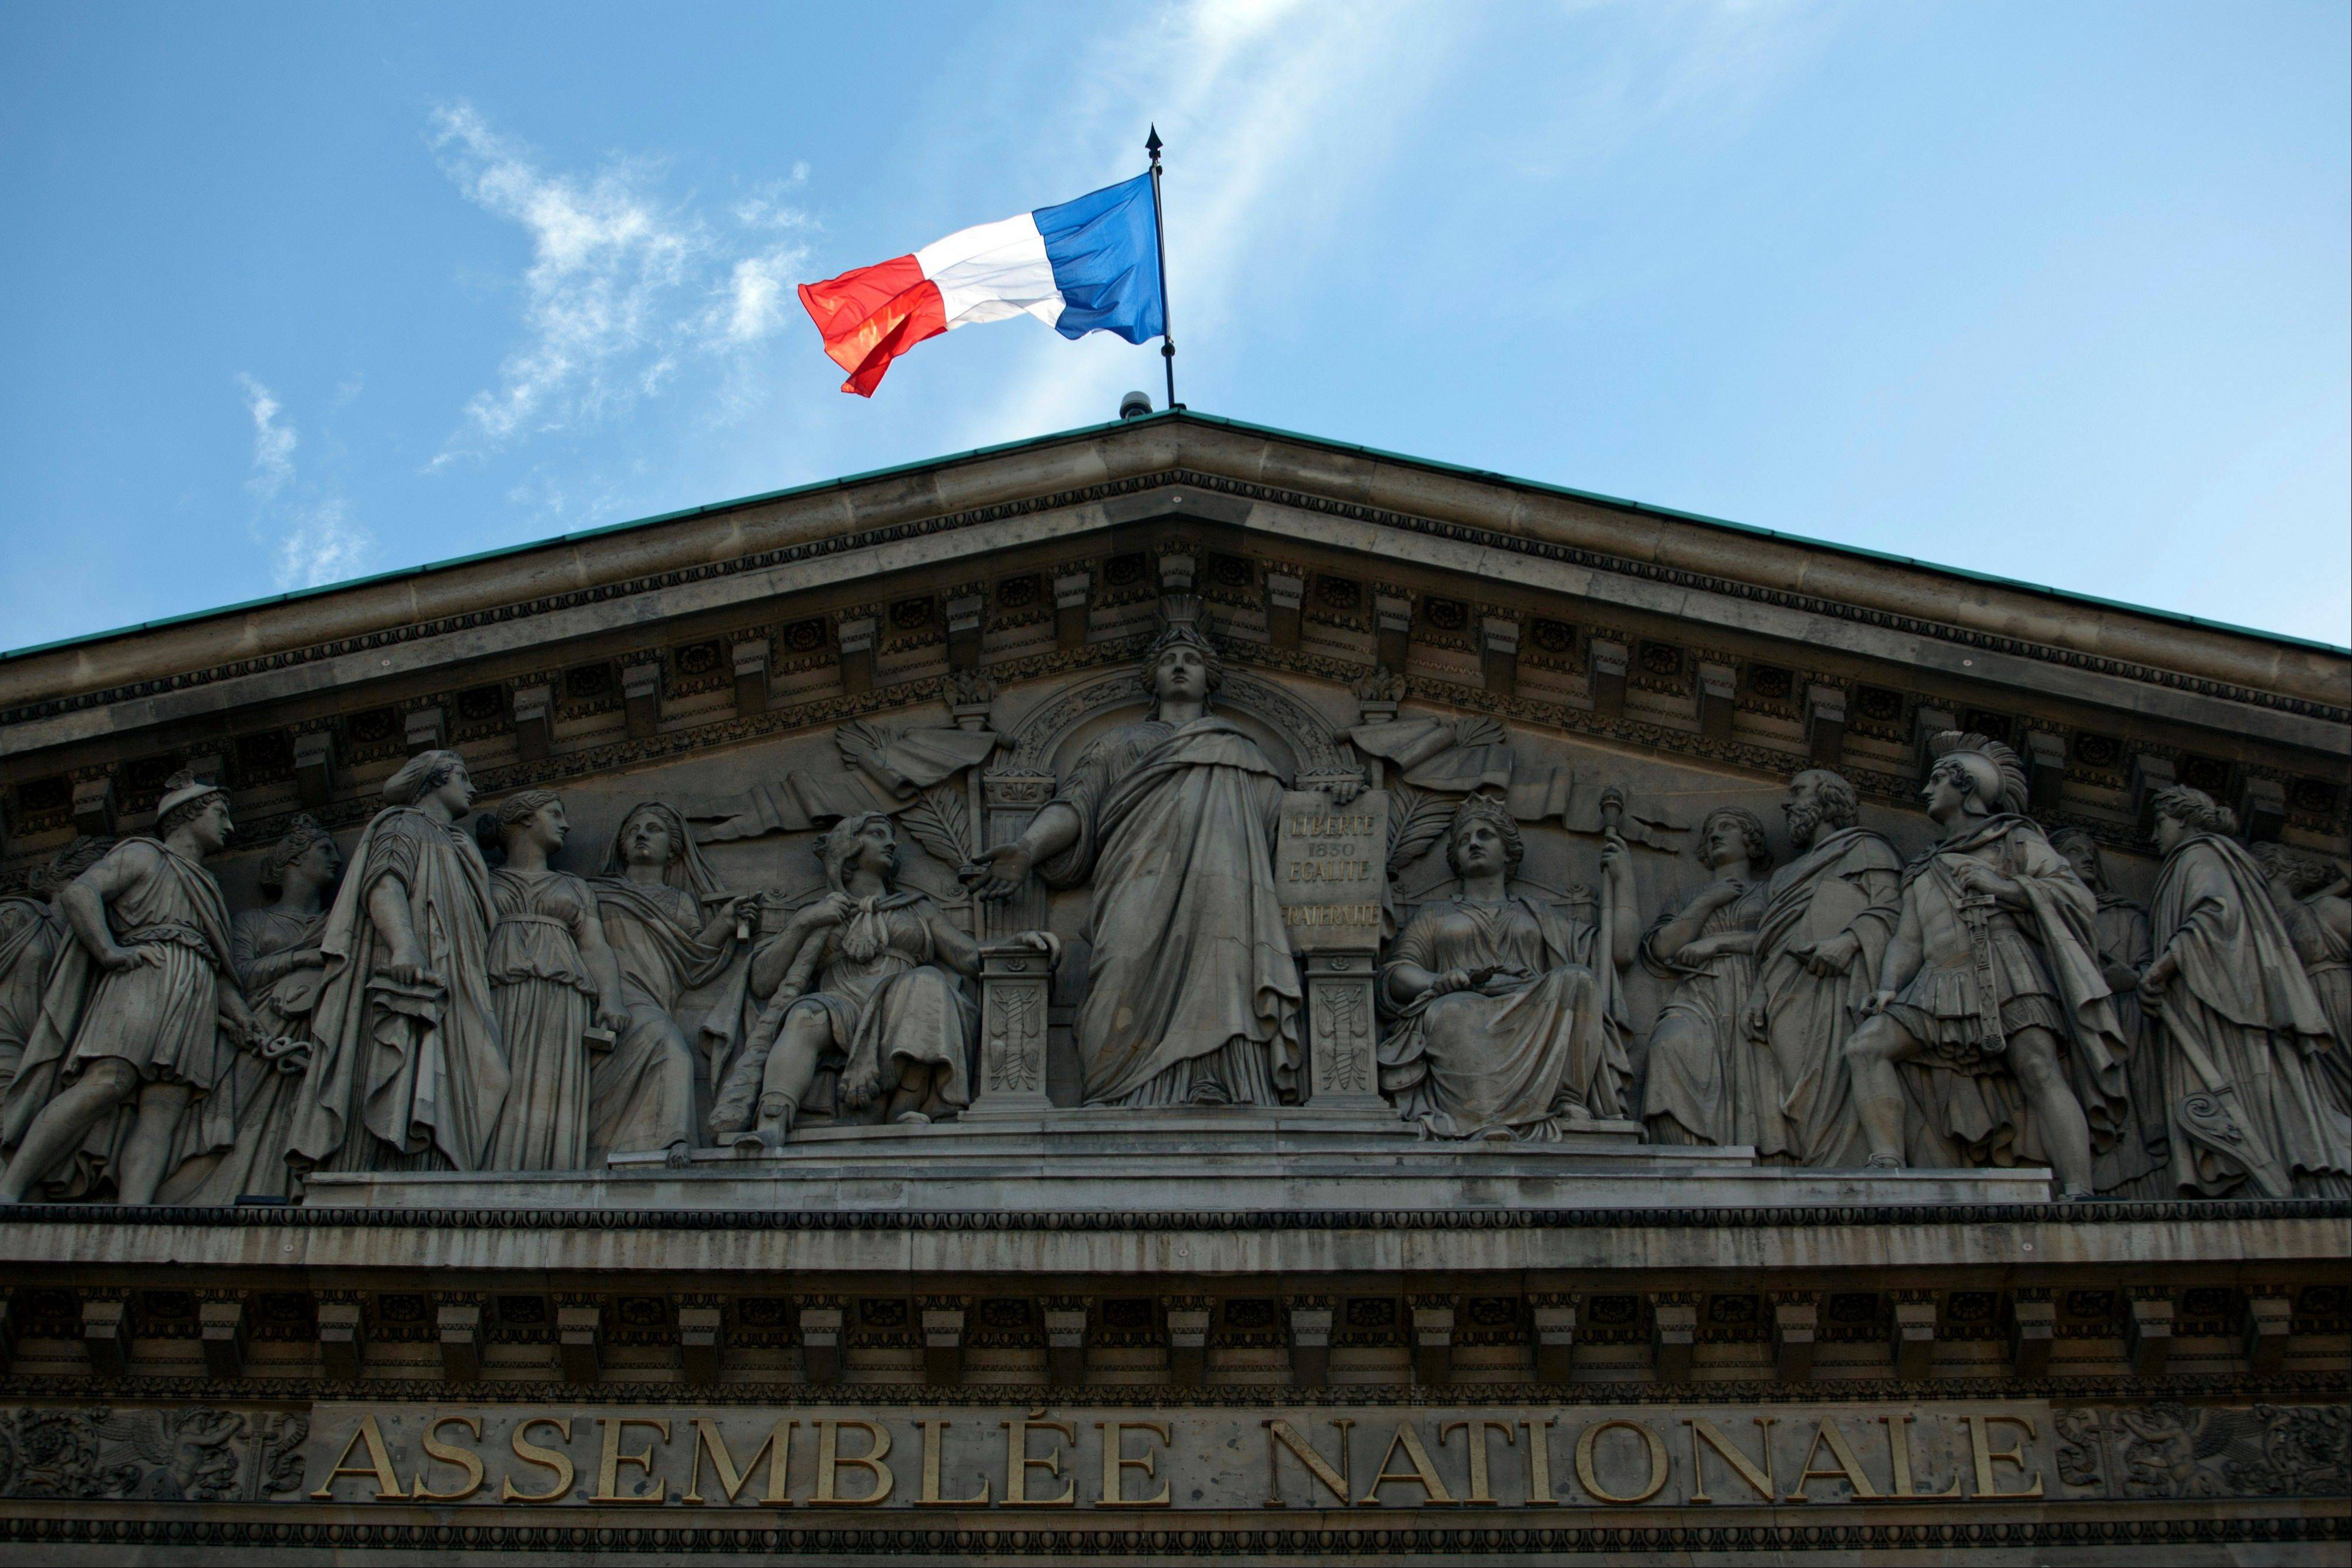 The French national flag flies atop the National Assembly building in Paris, France. Europe's economy is edging toward a recession as budget cuts from Spain to Ireland undermine consumer spending and company investment just as global demand shows signs of cooling.